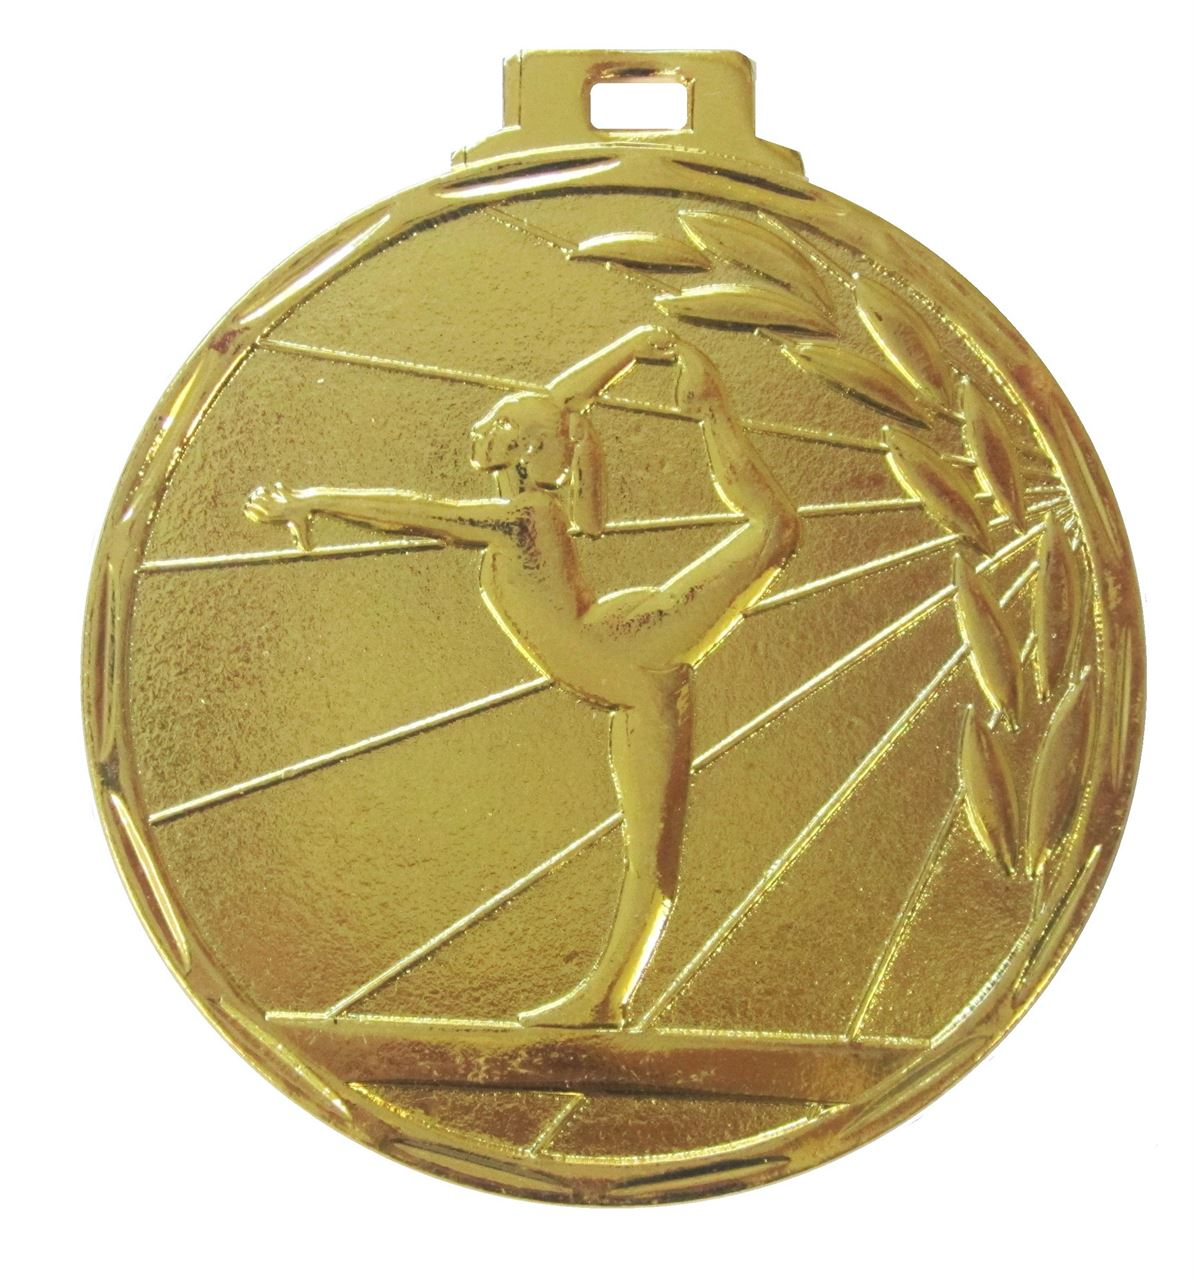 Gold Value Gymnastics Ray Medal (size: 50mm) - 7901